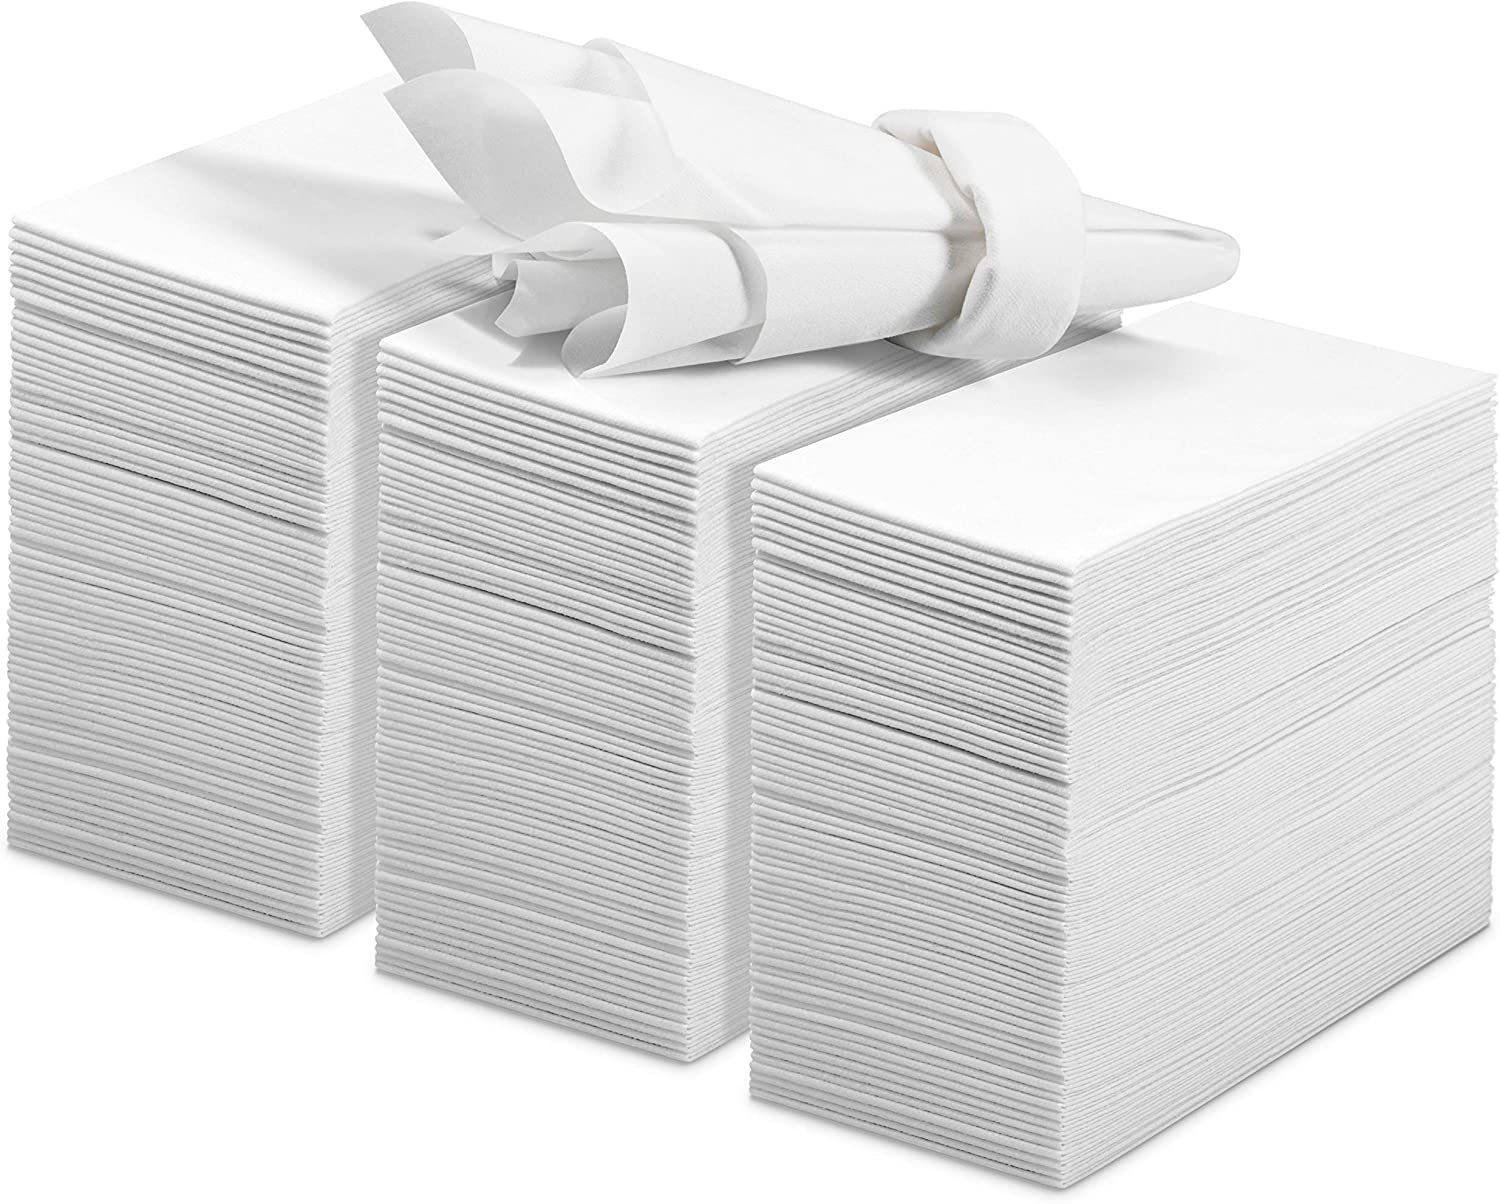 200 Linen Feel Guest Towels Disposable Cloth Like Hand Napkins Soft and Absorbent Paper Hand Towels for Kitchen, Bathroom, Parties, Weddings, Dinners or Events White